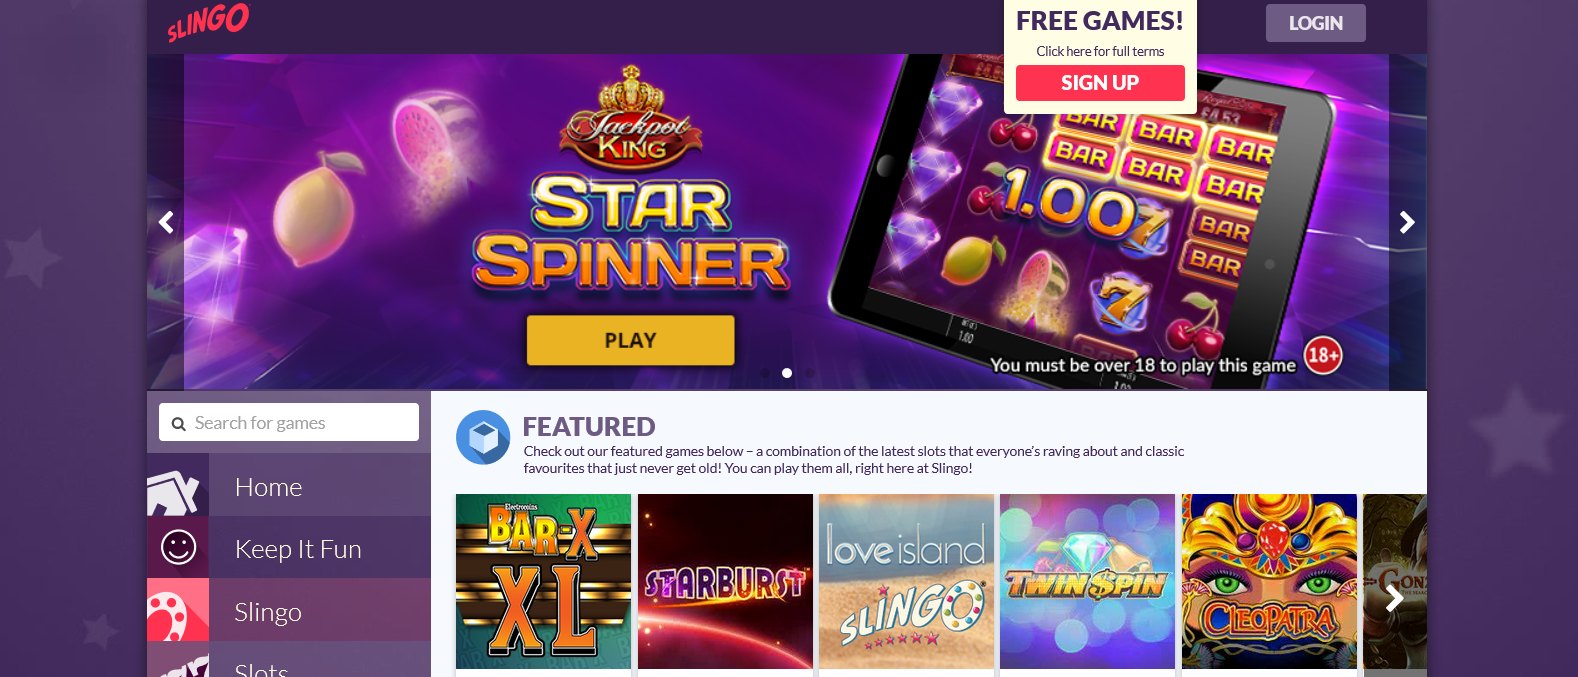 Grand eagle casino bonus codes 2018